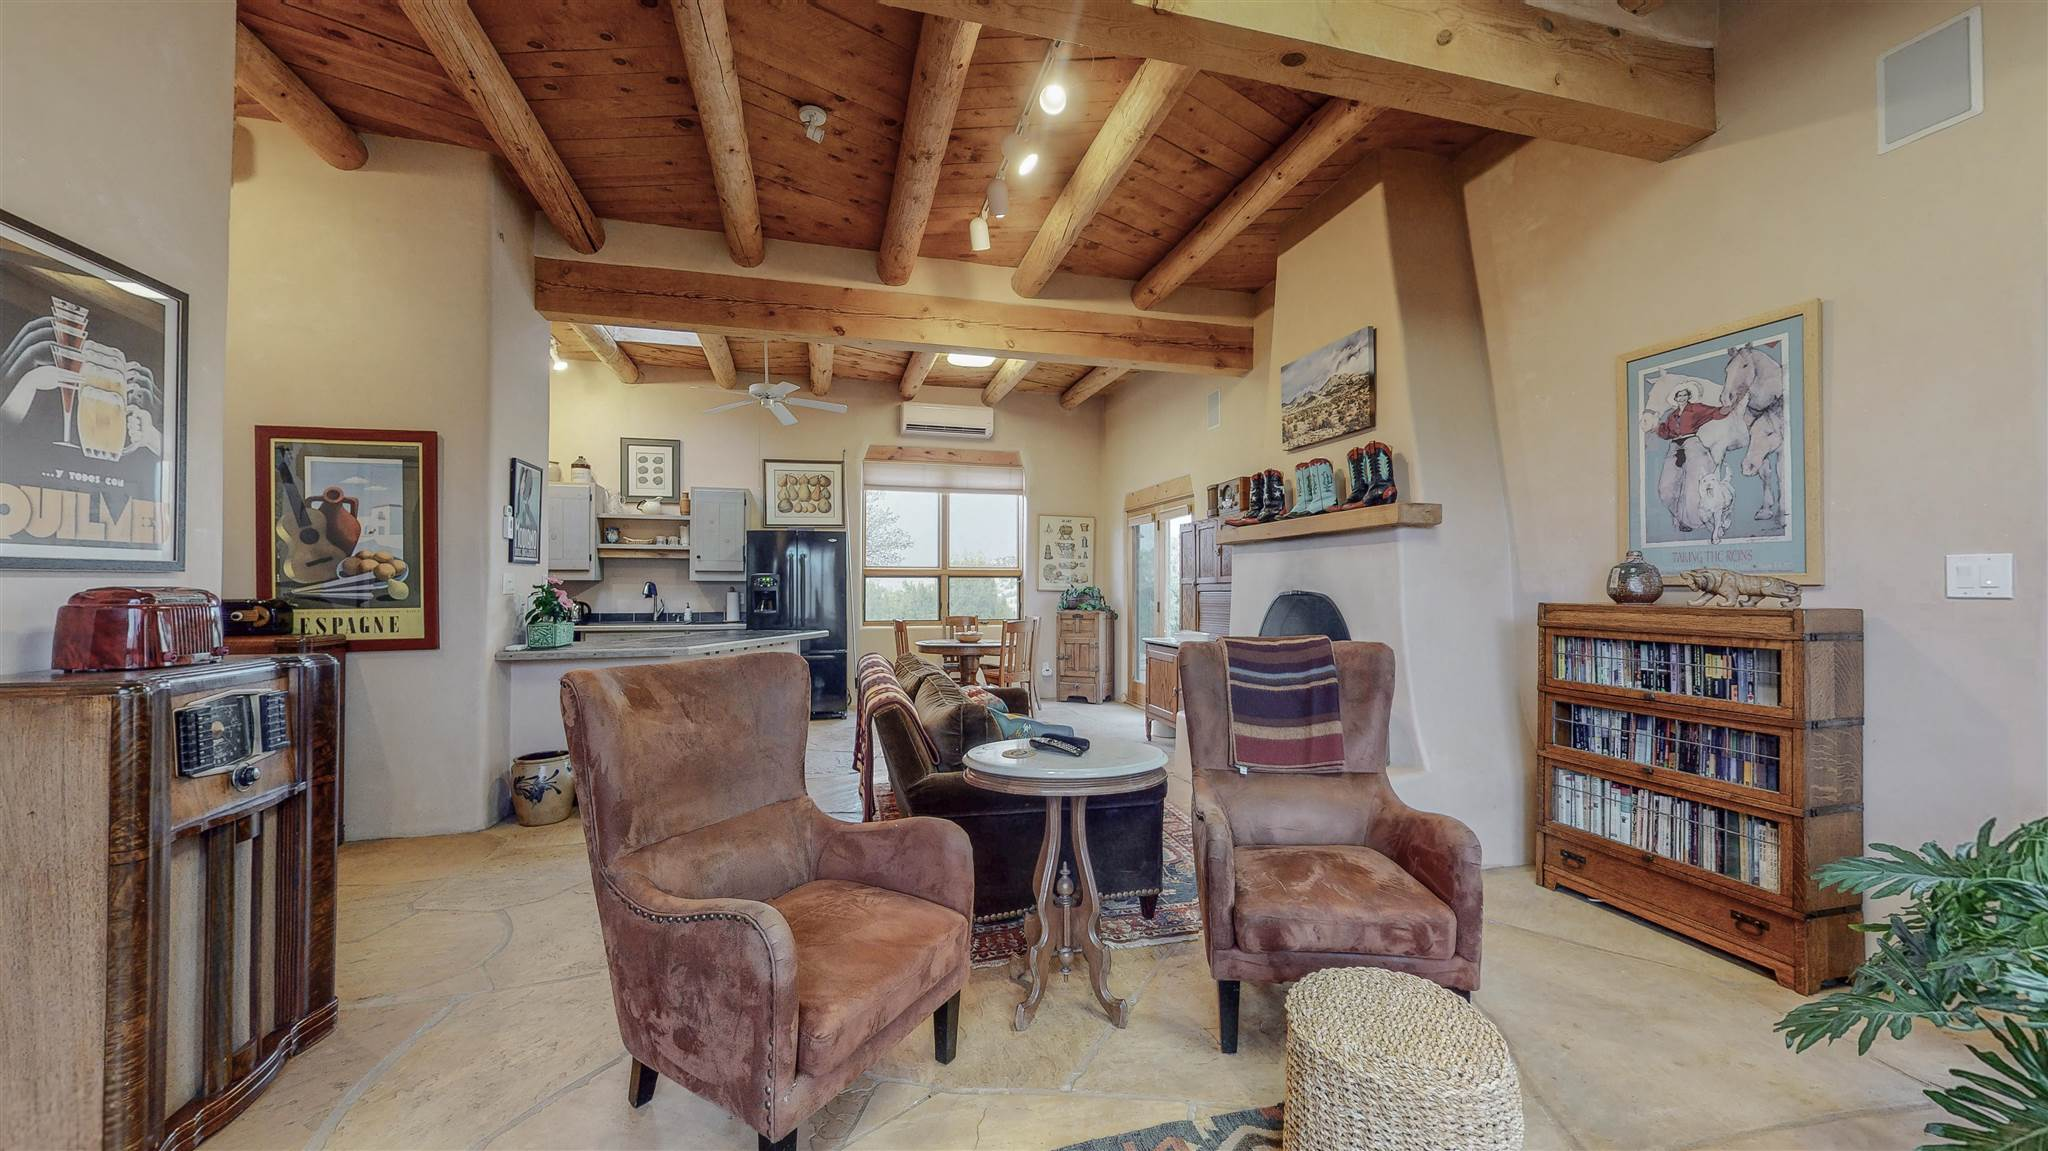 Are you looking for space in your own personal sanctuary? Check out this beautiful custom-built, passive solar Michael Sharber home on 5.8 acres, with views of the Cerrillos Hills and Ortiz Mountains. This fully custom home showcases traditional pueblo style finishes with brick floors, custom cabinets, diamond plaster, tongue and groove ceilings, and beautiful beams running throughout the house. Stay cool in the summers with a mini-split cooling system, and warm in the winters with your Kiva fireplaces and radiant heat. Enjoy your personalized patio and landscaping with flowers, apple trees, peach trees, and local plants.  This property has three additional bonus rooms that could easily be converted into extra living space! Come see this beautiful property today!